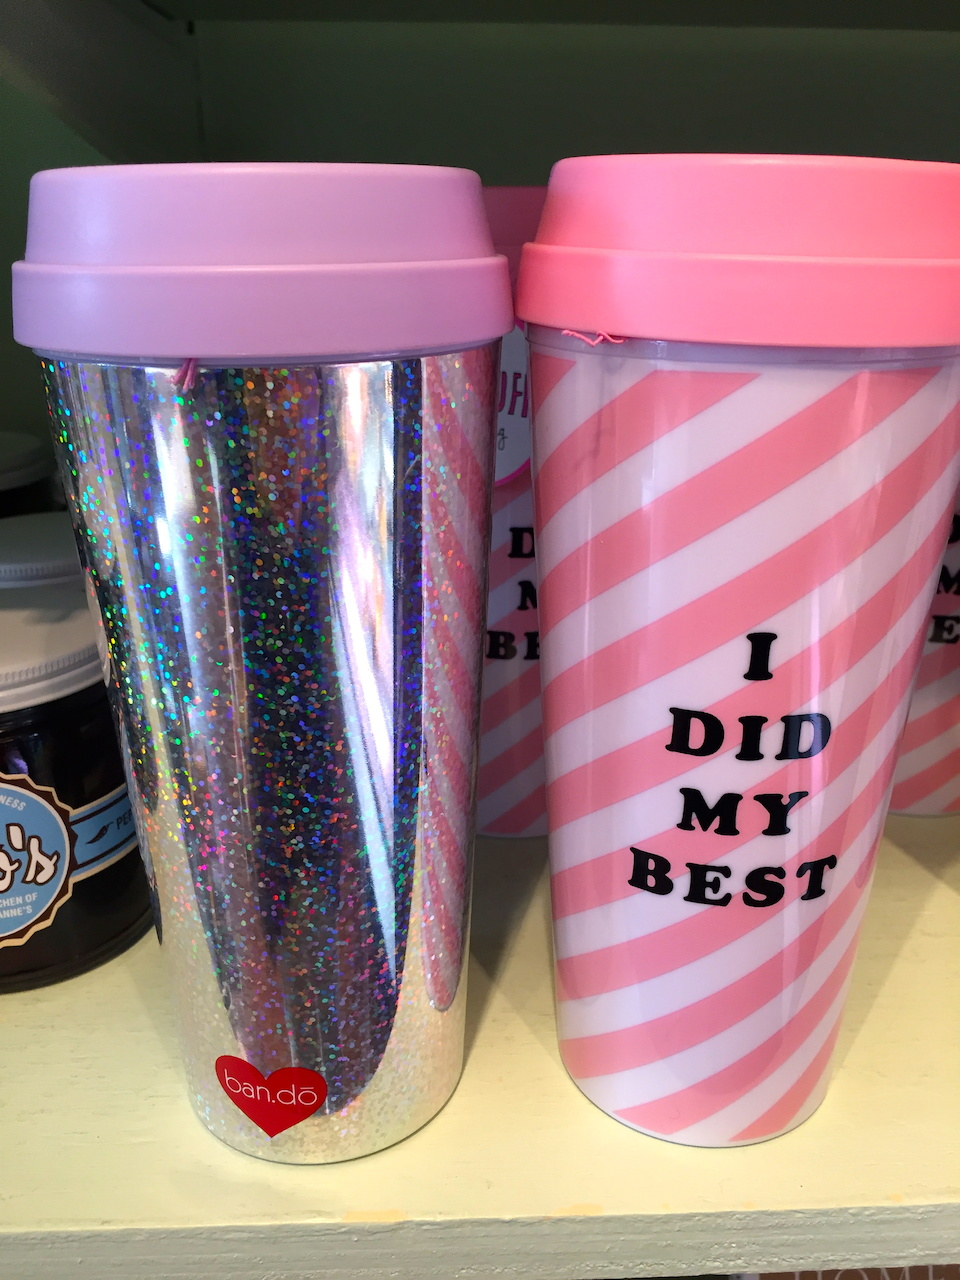 Ban.do thermal mugs, $15 at Muddy's Bake Shop